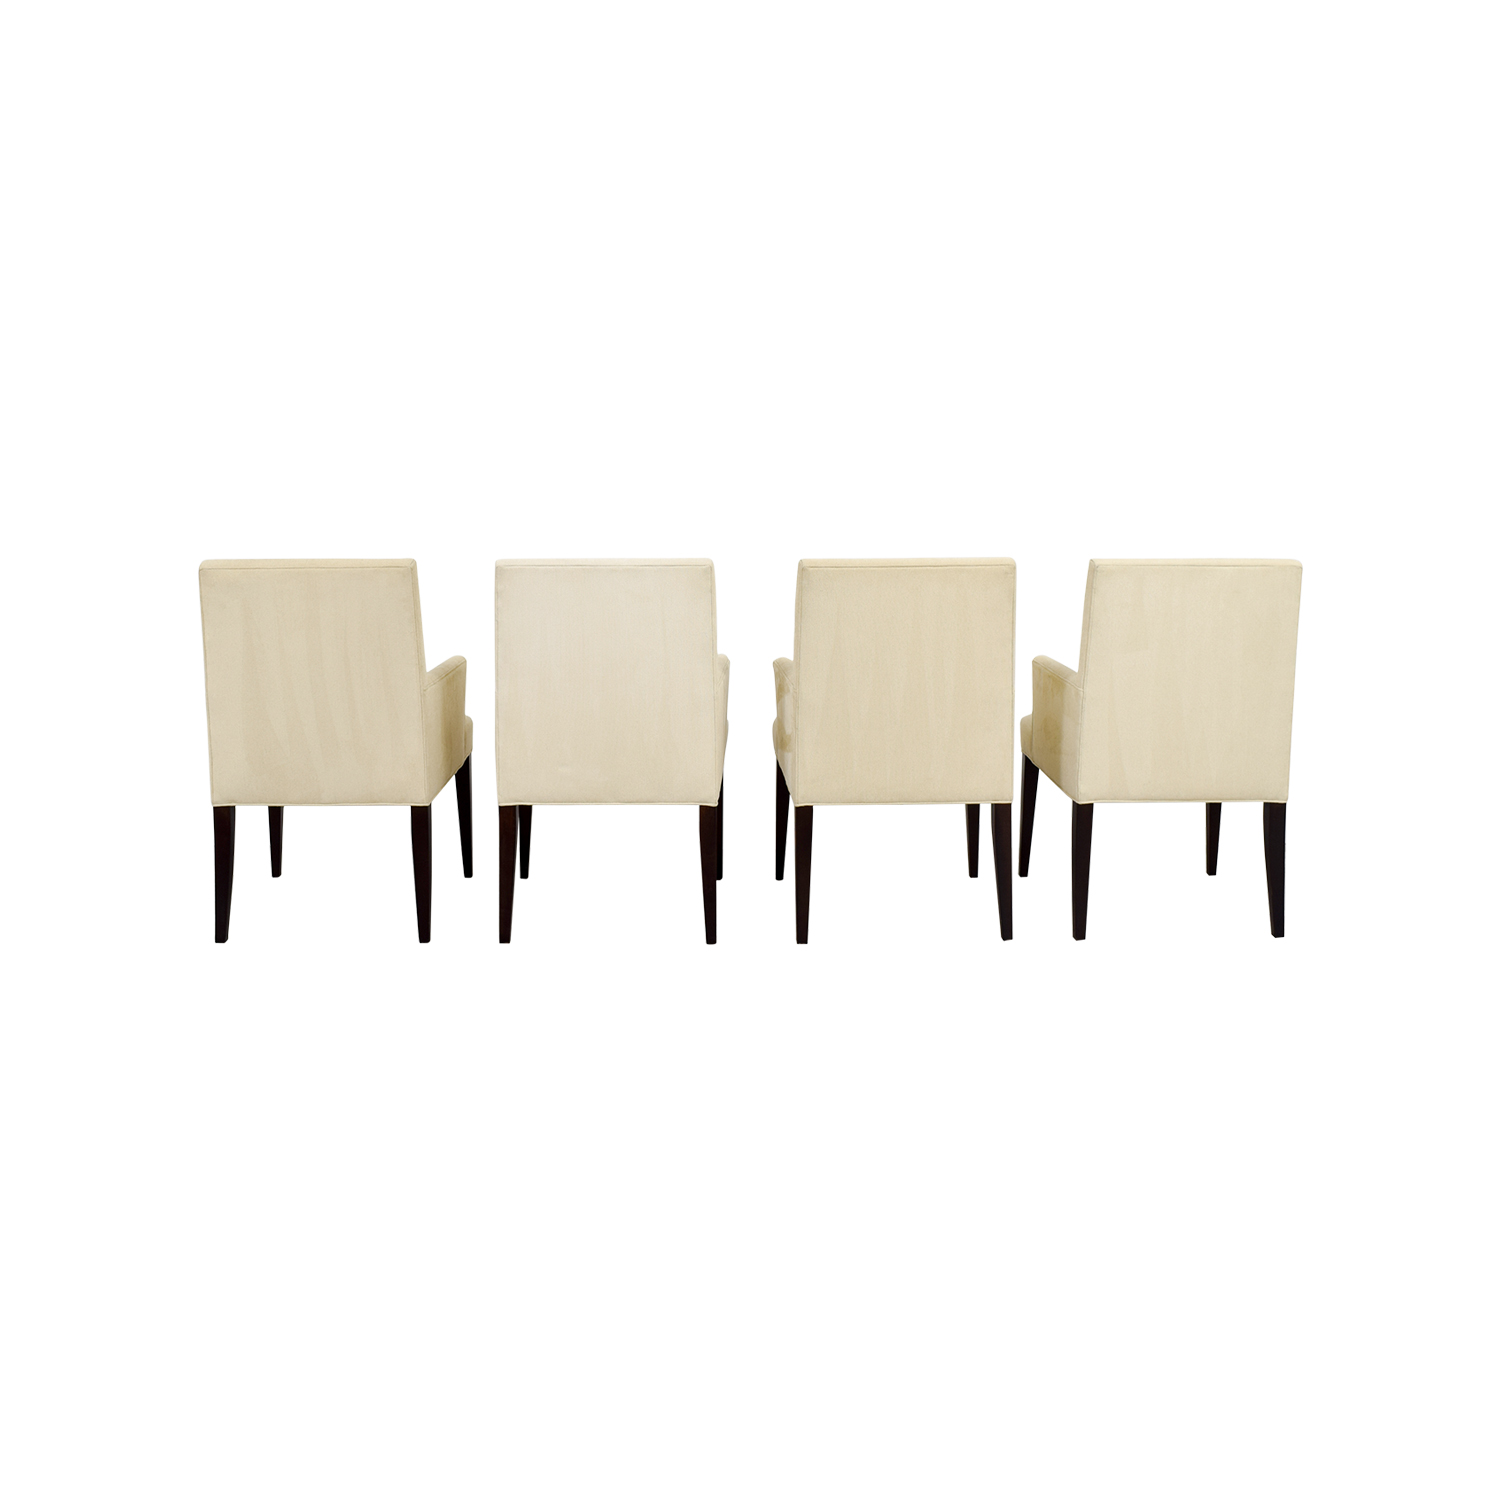 buy Crate & Barrel Crate & Barrel Miles Dining Chairs online